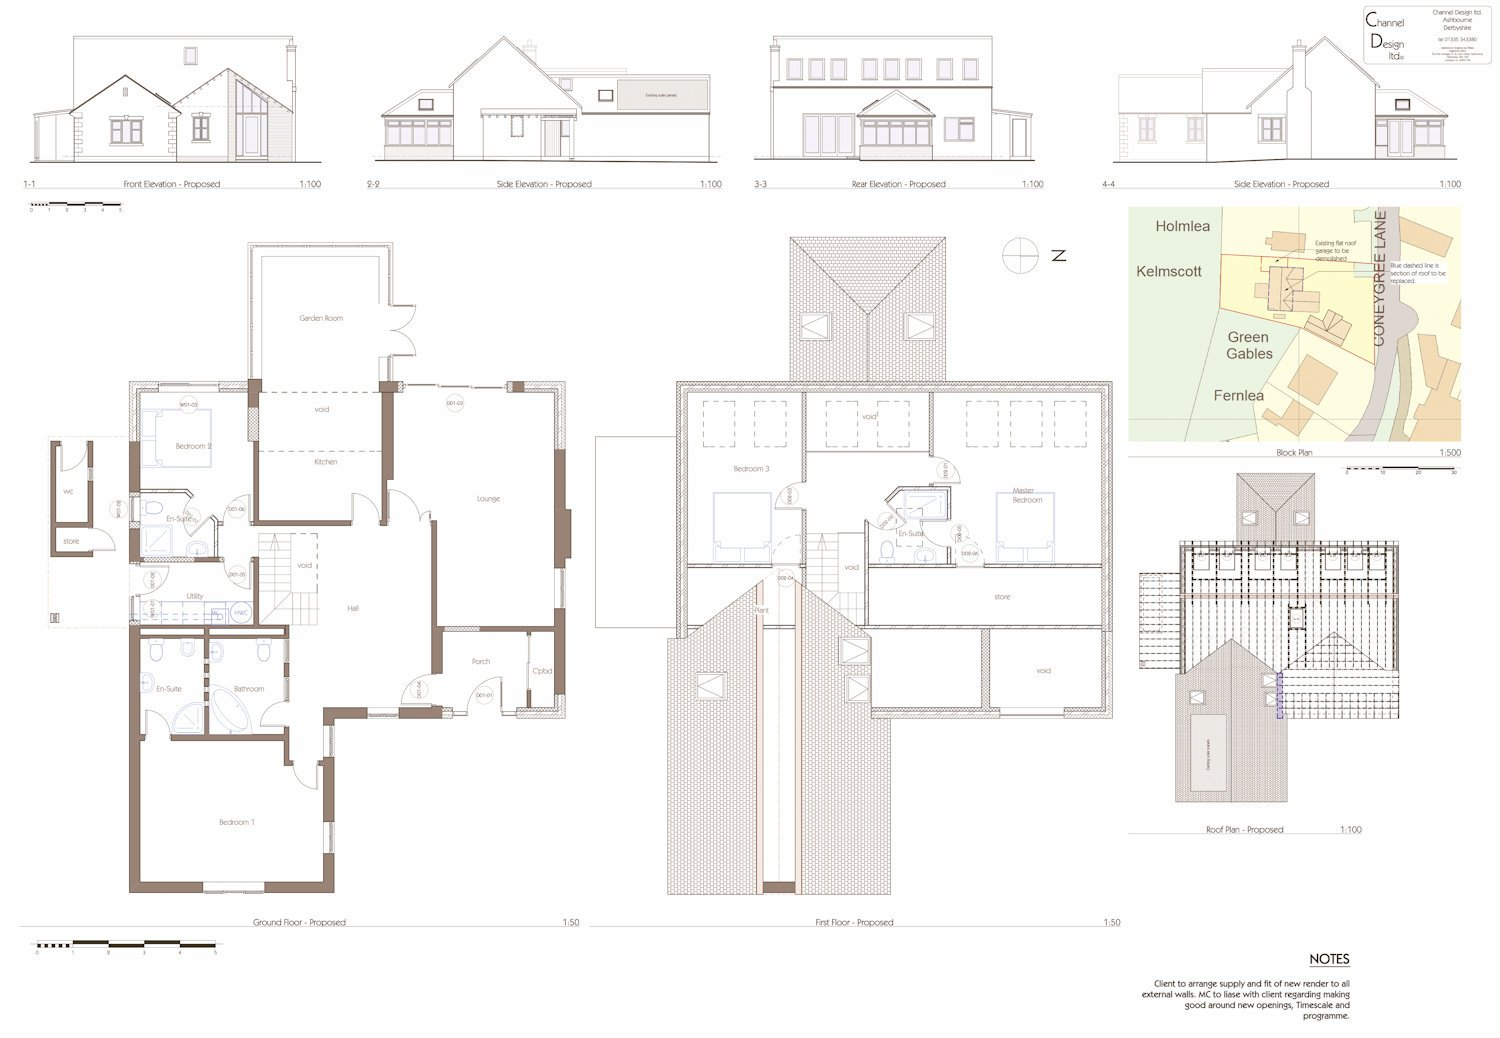 04C-Proposed-plans-and-elevations